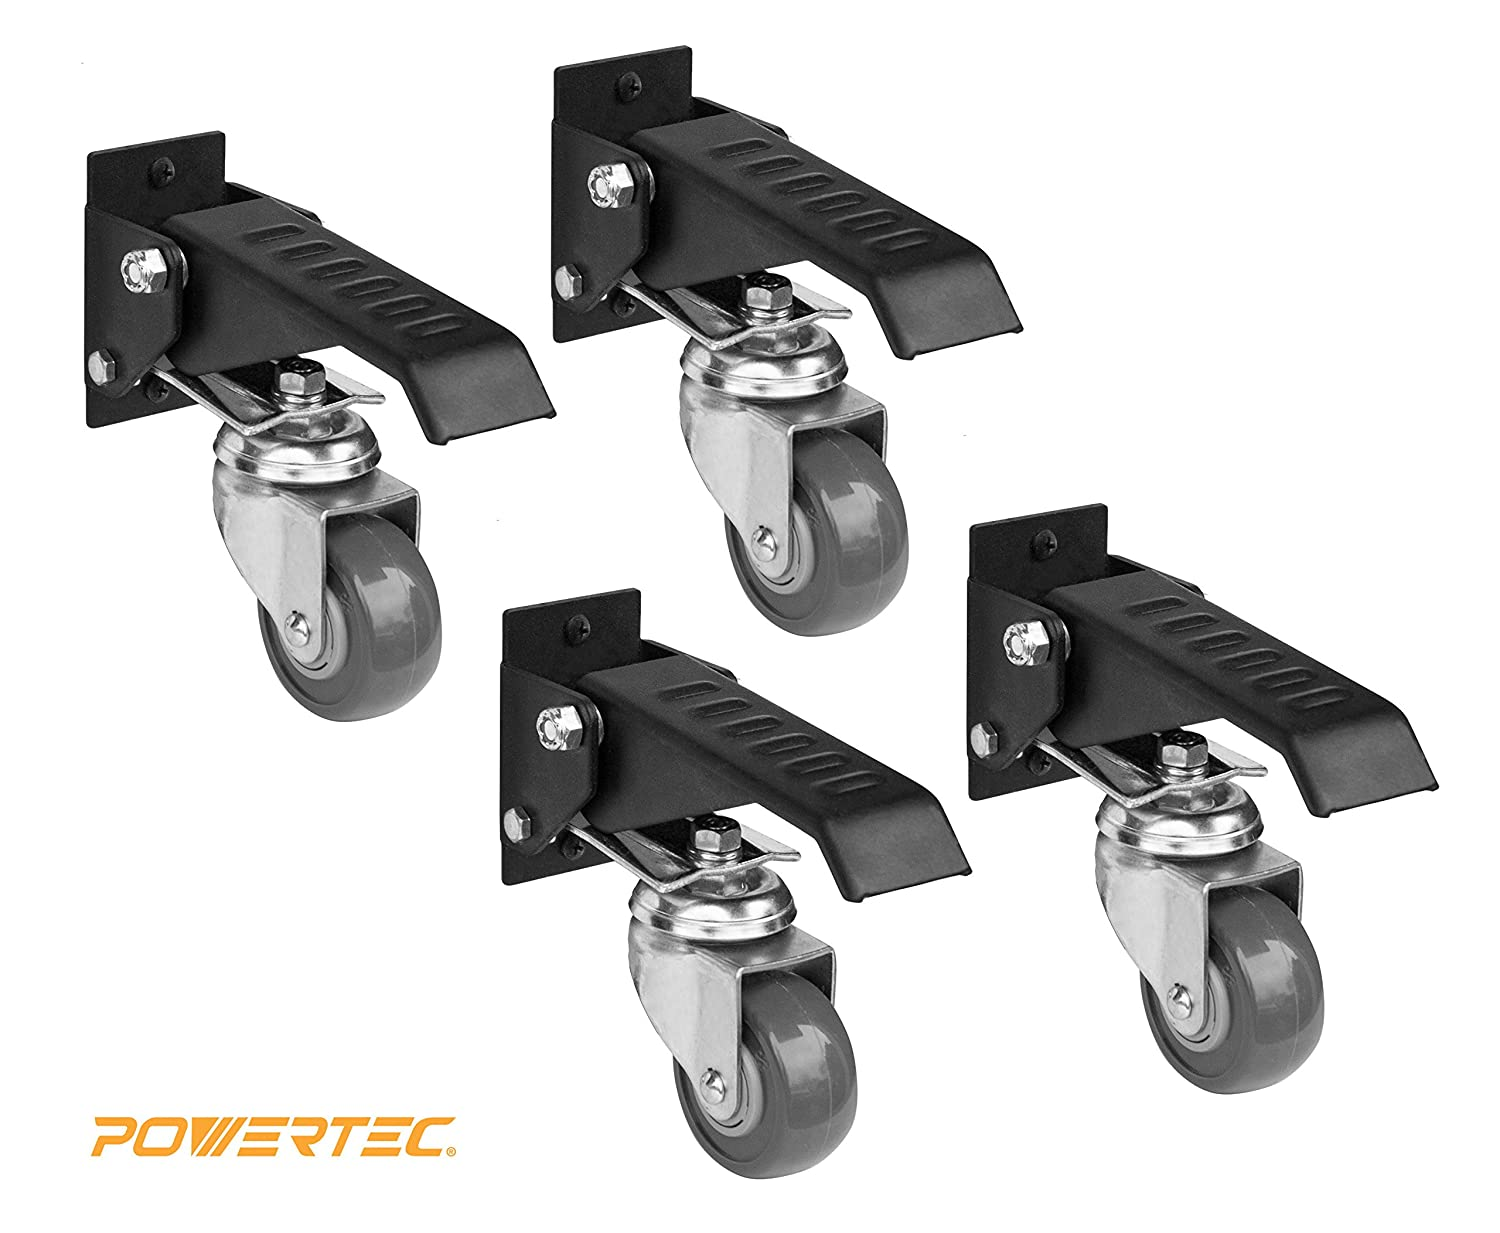 Amazon.com: POWERTEC 17000 Workbench Caster Kit (Pack of 4): Home ...